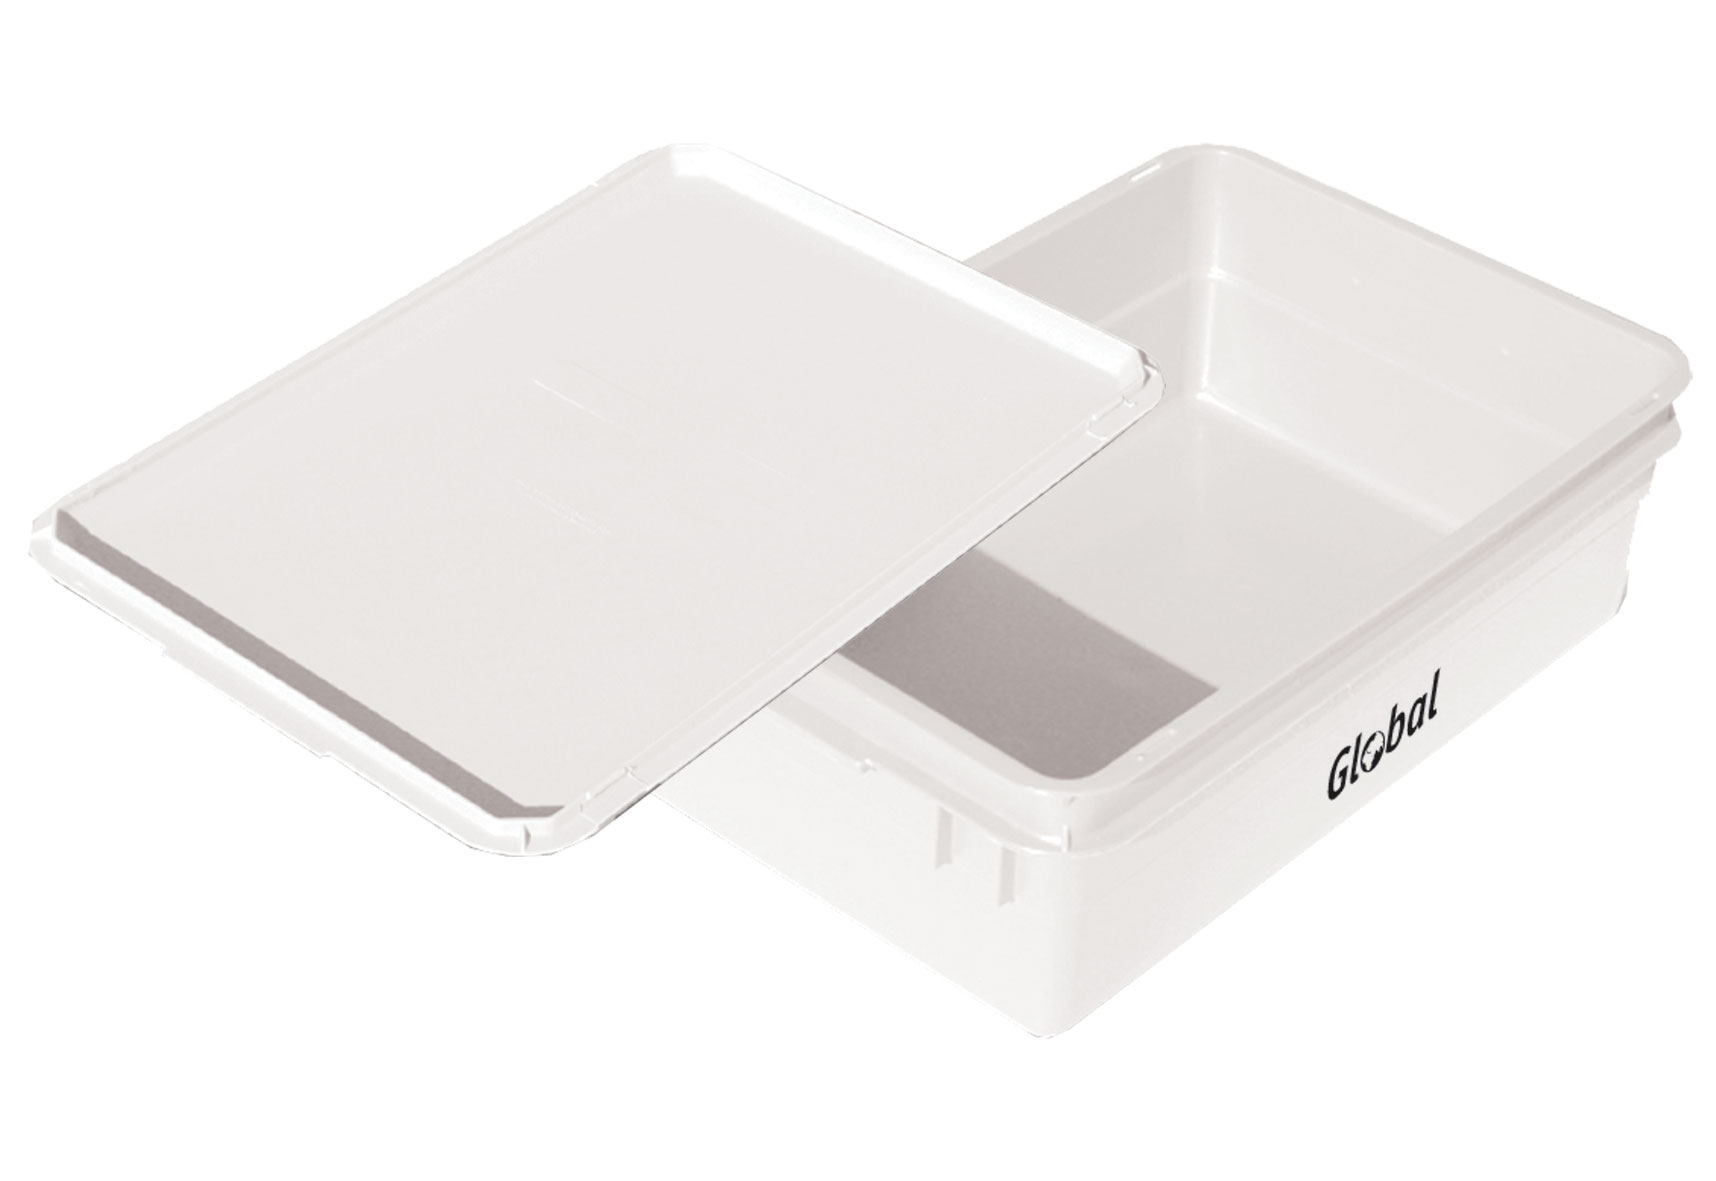 STORAGE CONTAINER LARGE WITH LID - PLASTIC - 600 x 400 x 195mm